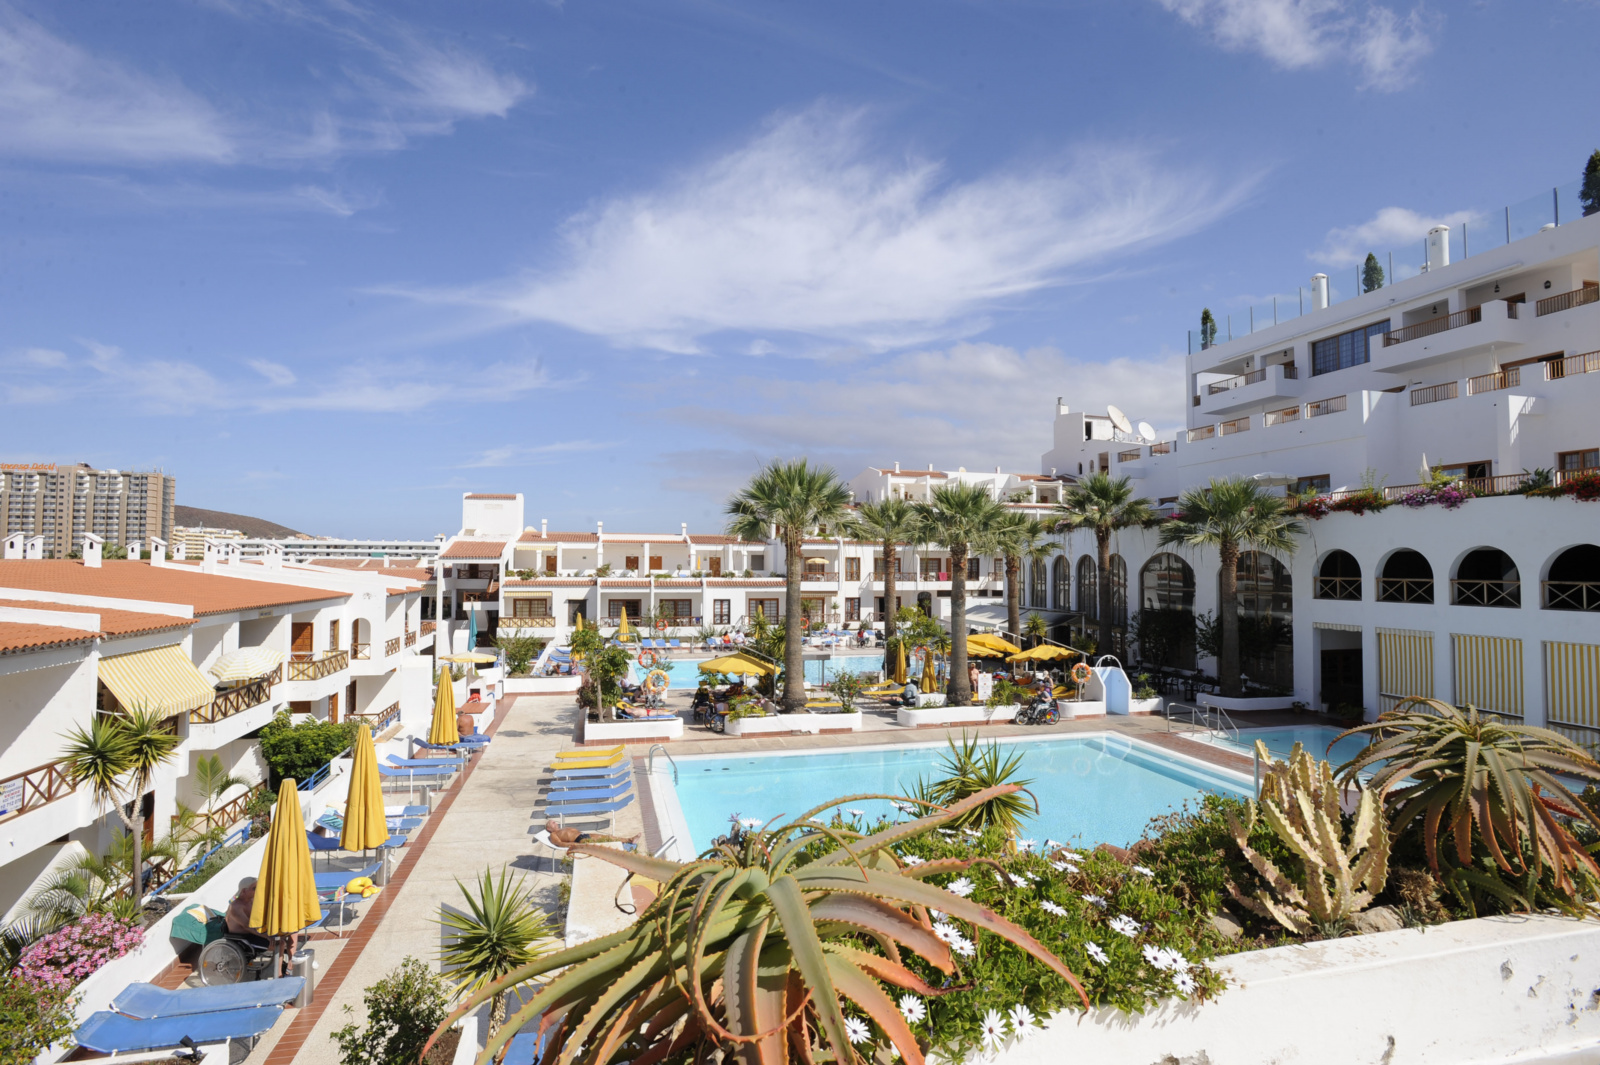 Overlooking the courtyard of the Mar y Sol hotel. A number of sun loungers surround a swimming pool which is in the centre of the courtyard.